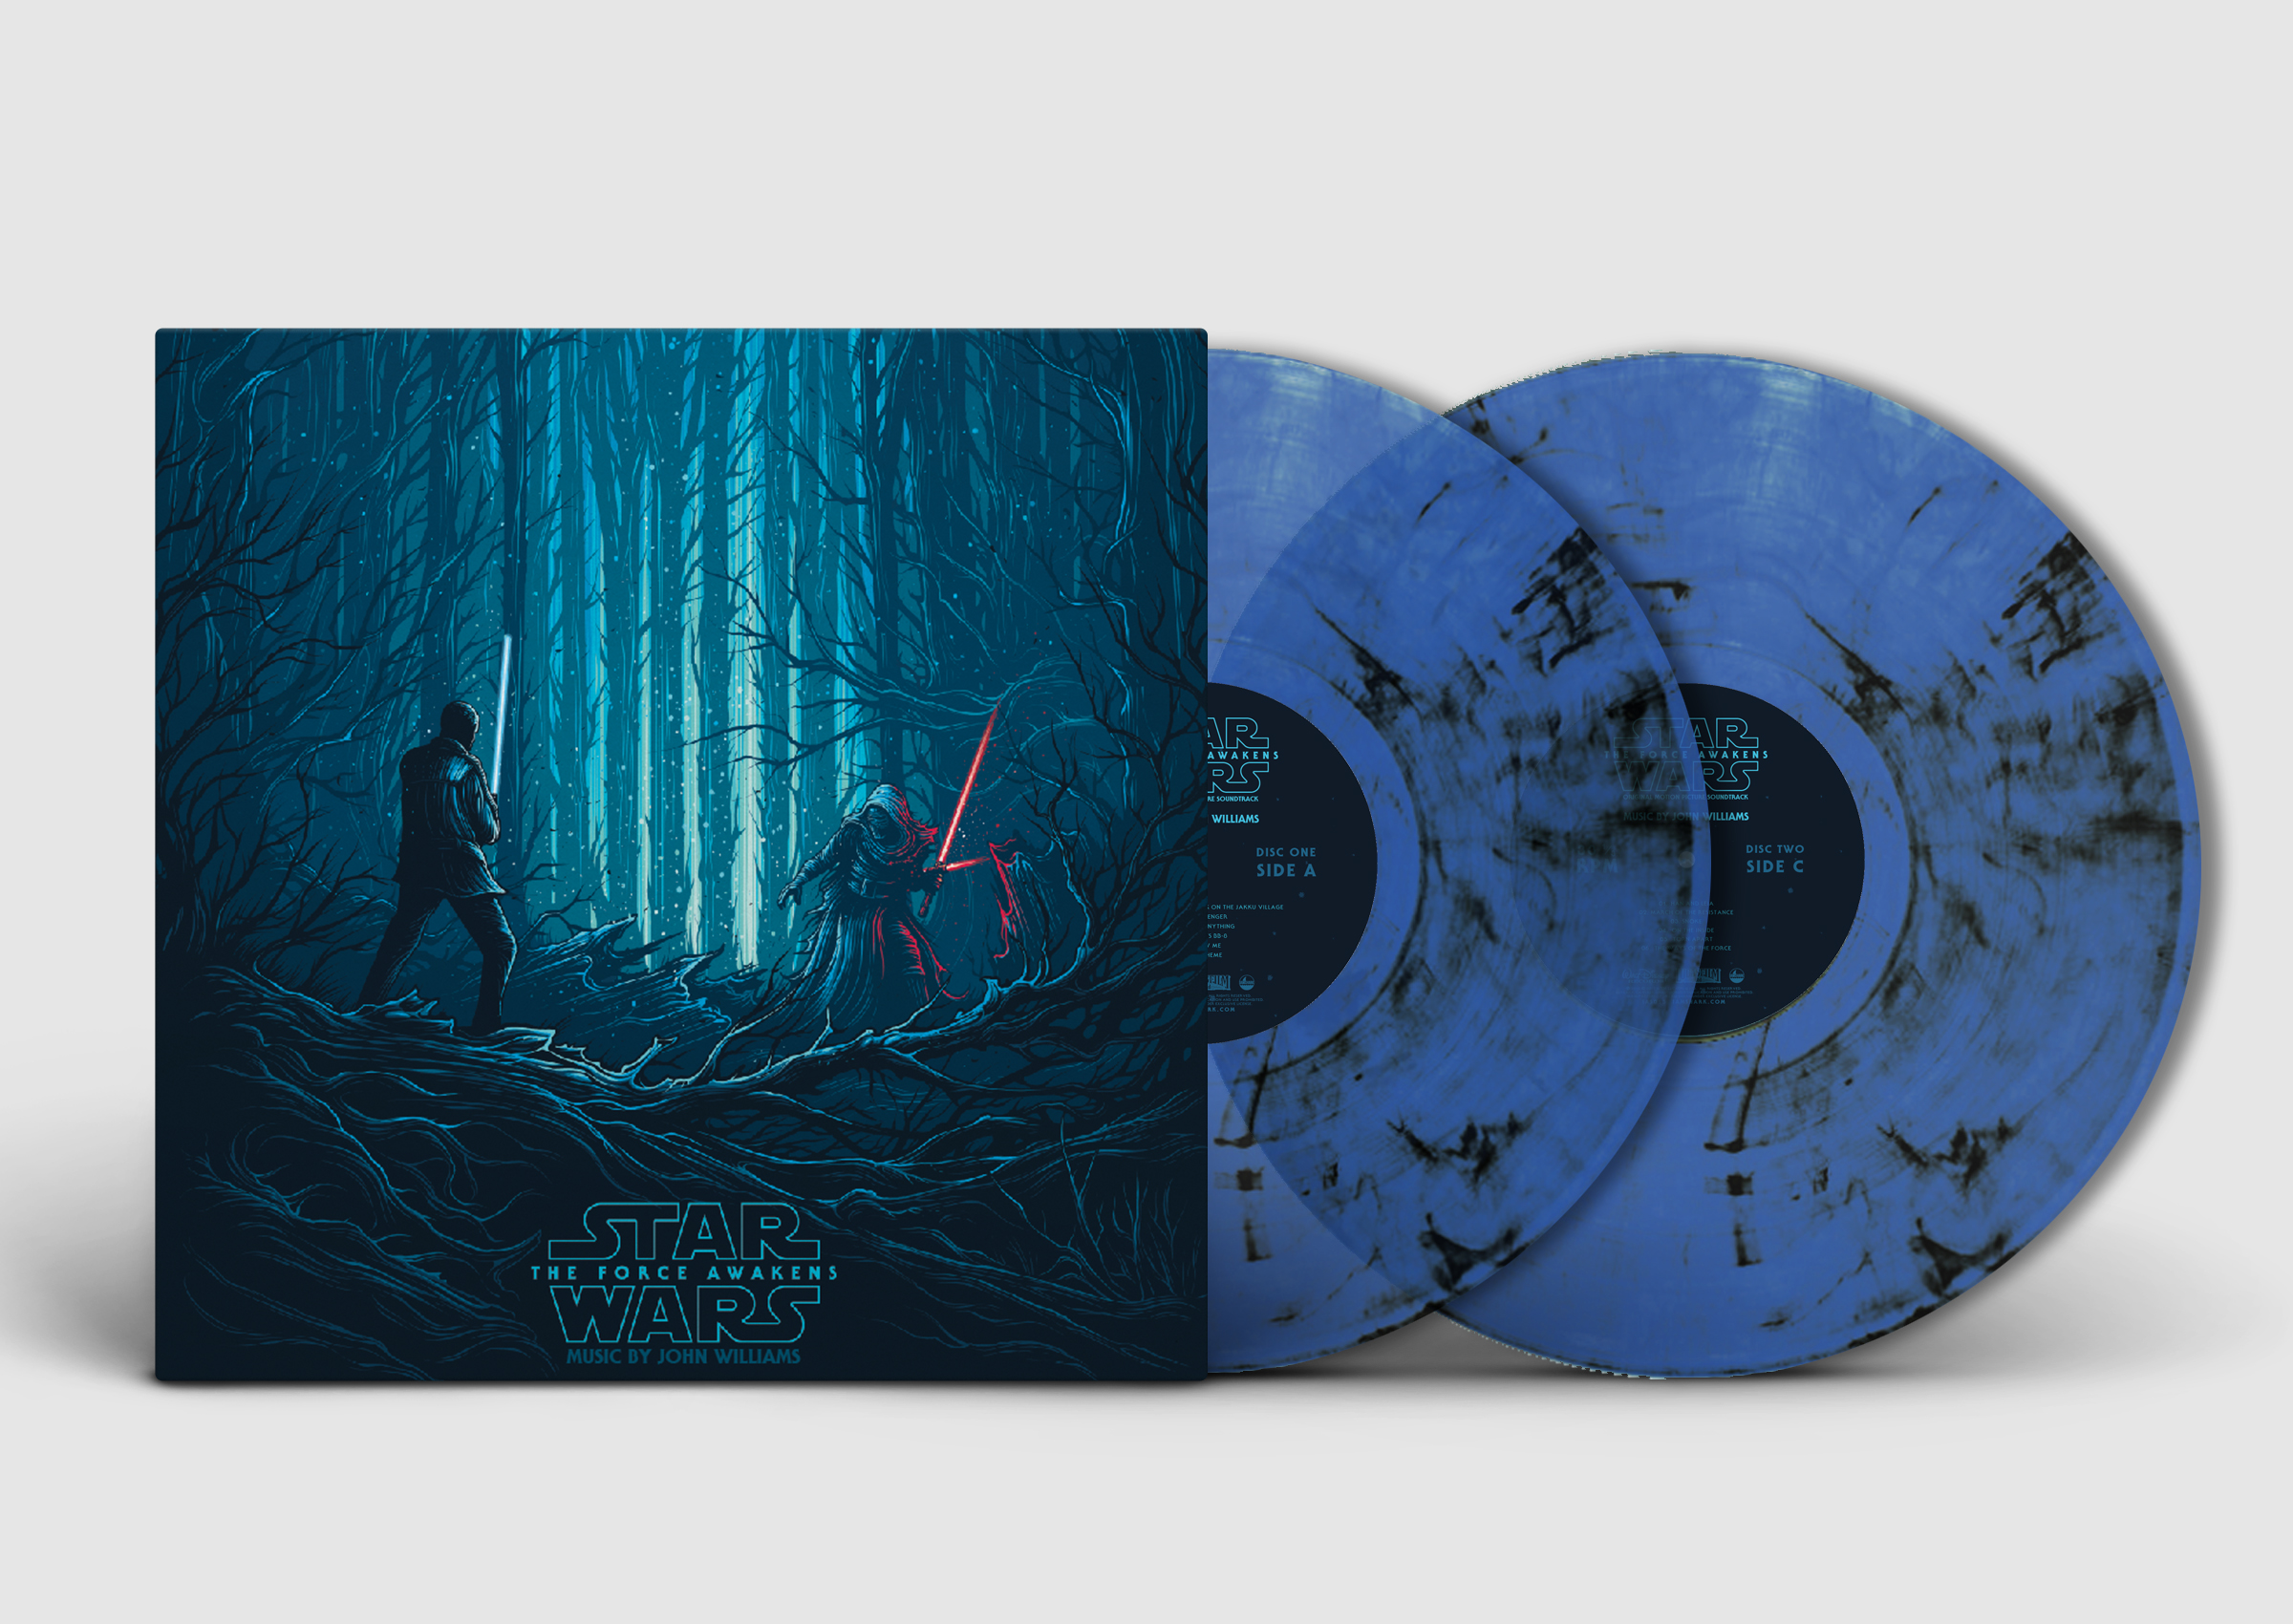 Star Wars Episode 7: The Force Awakens - Original Motion Picture Soundtrack (Collector's Edition) KYLO & FINN